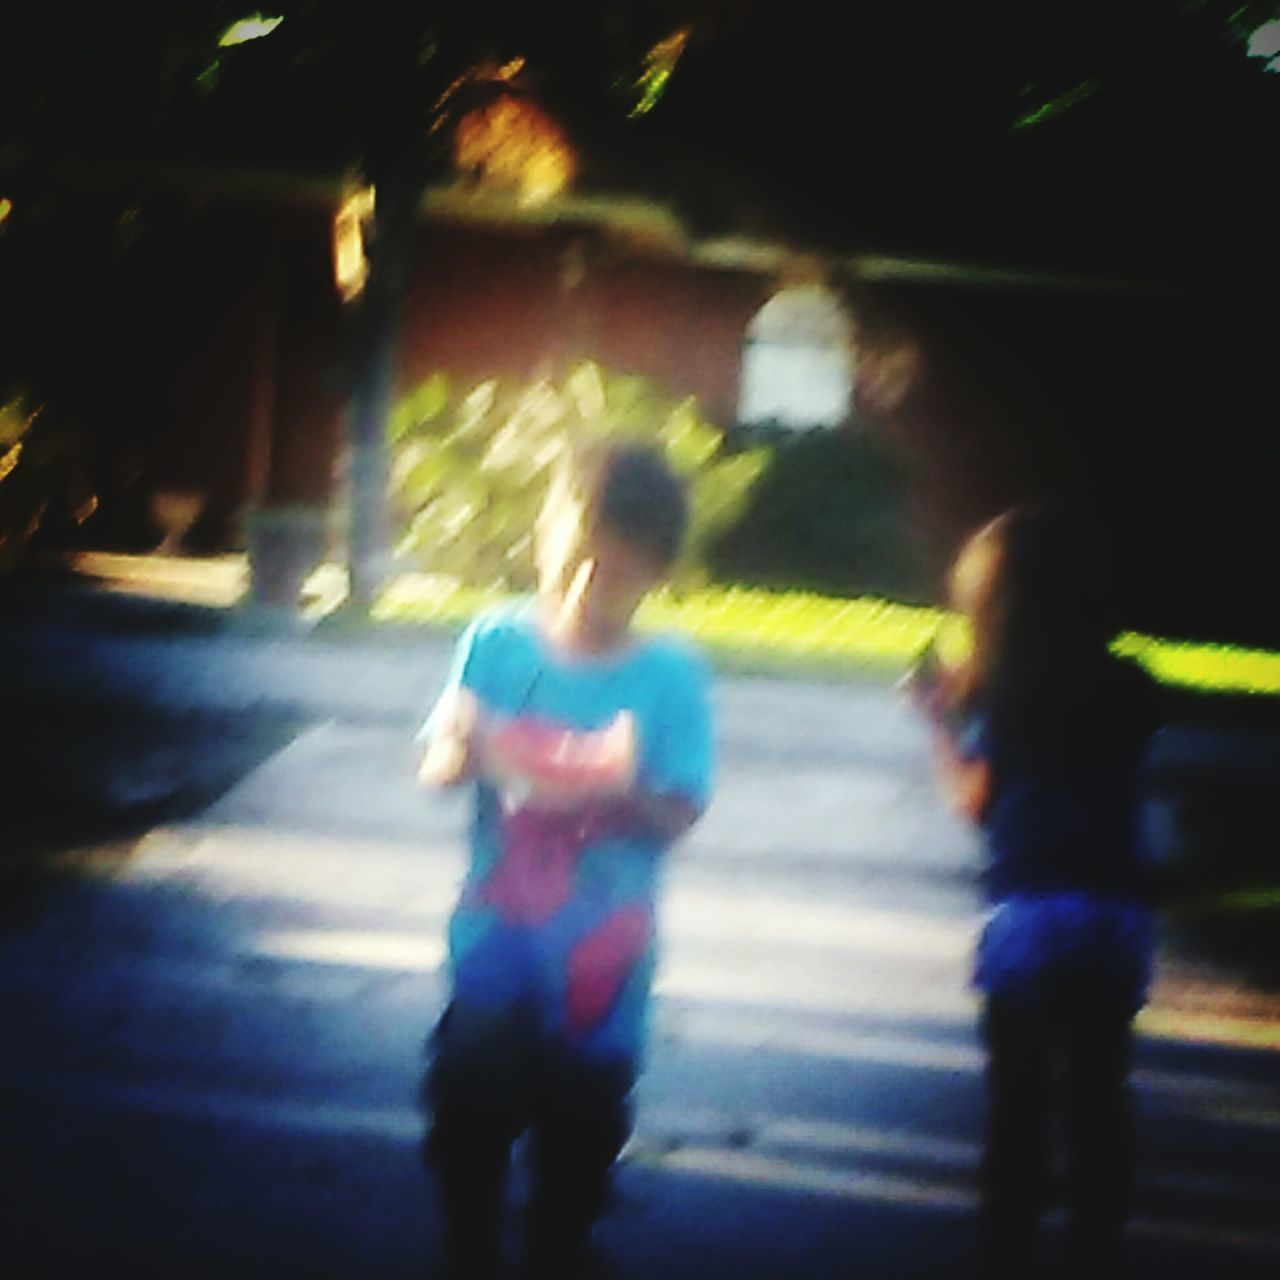 Blurred Motion Street City Street Road Motion People City Life Two People Outdoors Speed City Lifestyles The Great Outdoors - 2017 EyeEm Awards Eating Watermelon